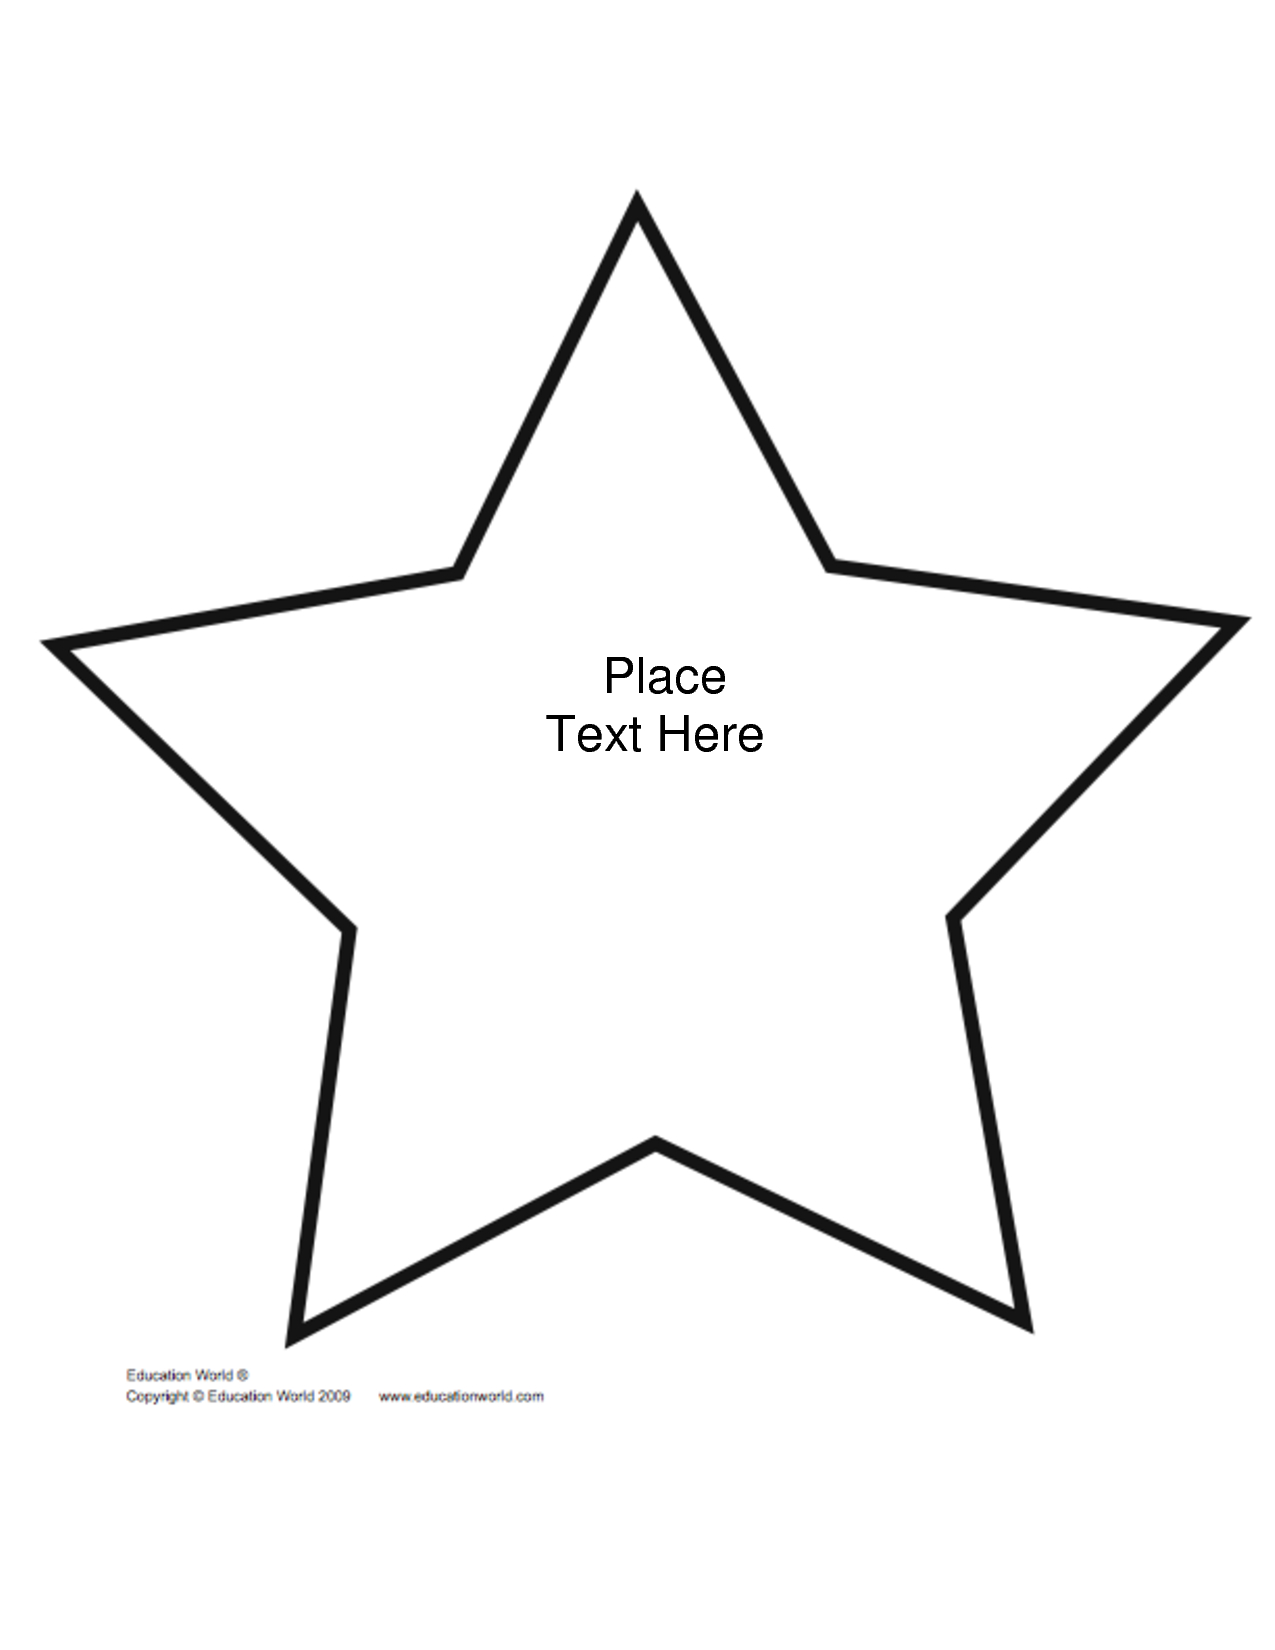 Free+Printable+Star+Shape+Templates | Biblical Preschool Lessons - Star Template Free Printable